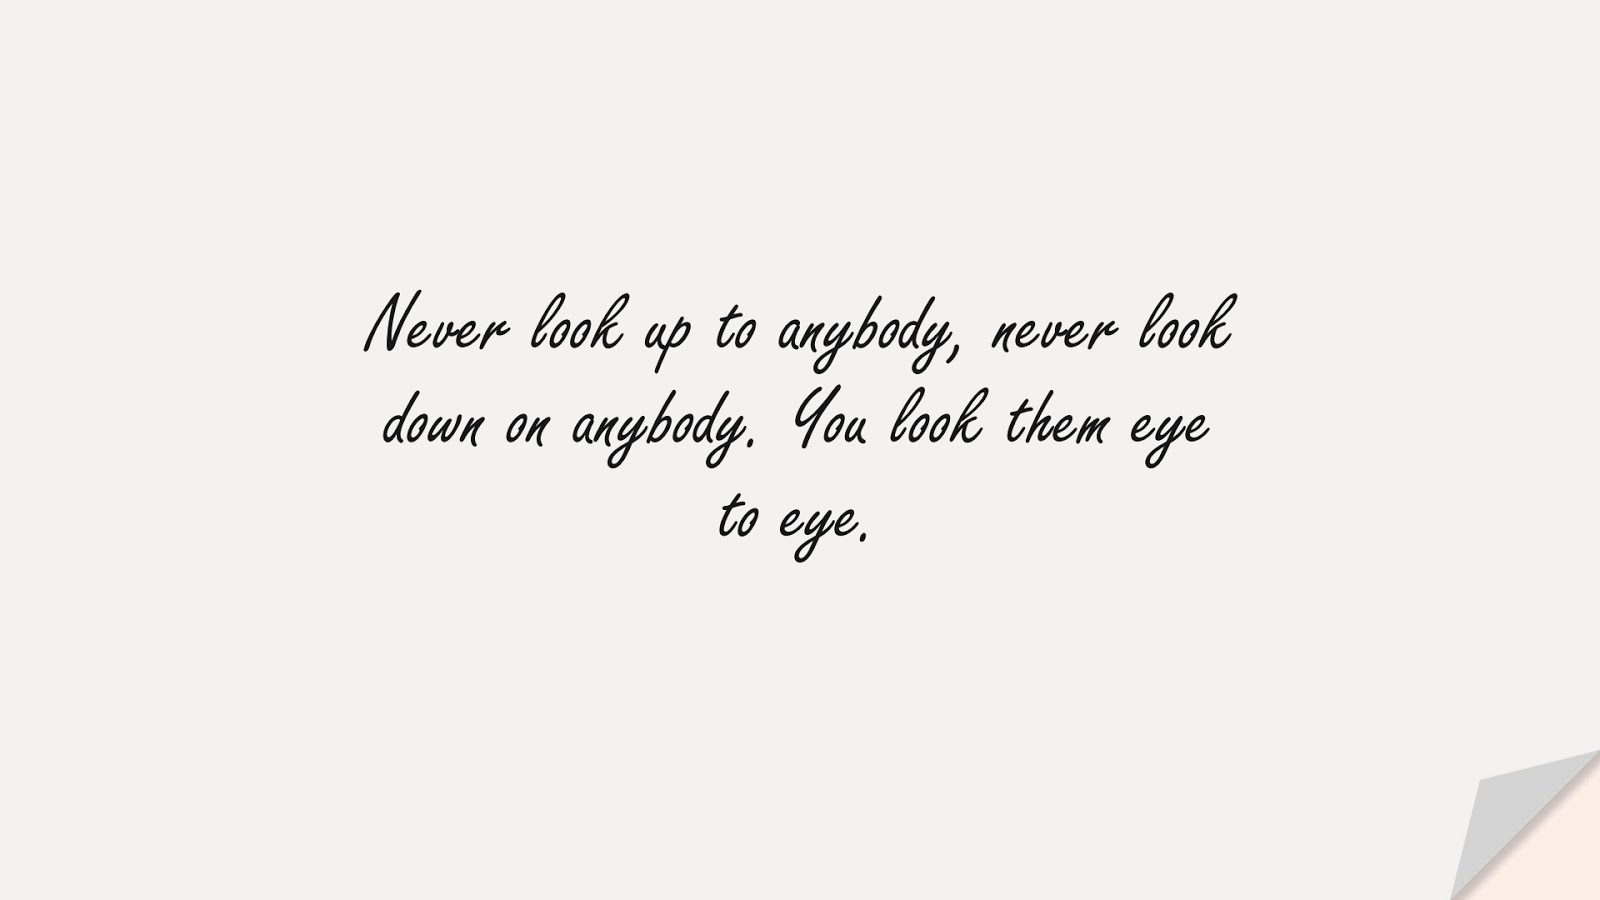 Never look up to anybody, never look down on anybody. You look them eye to eye.FALSE